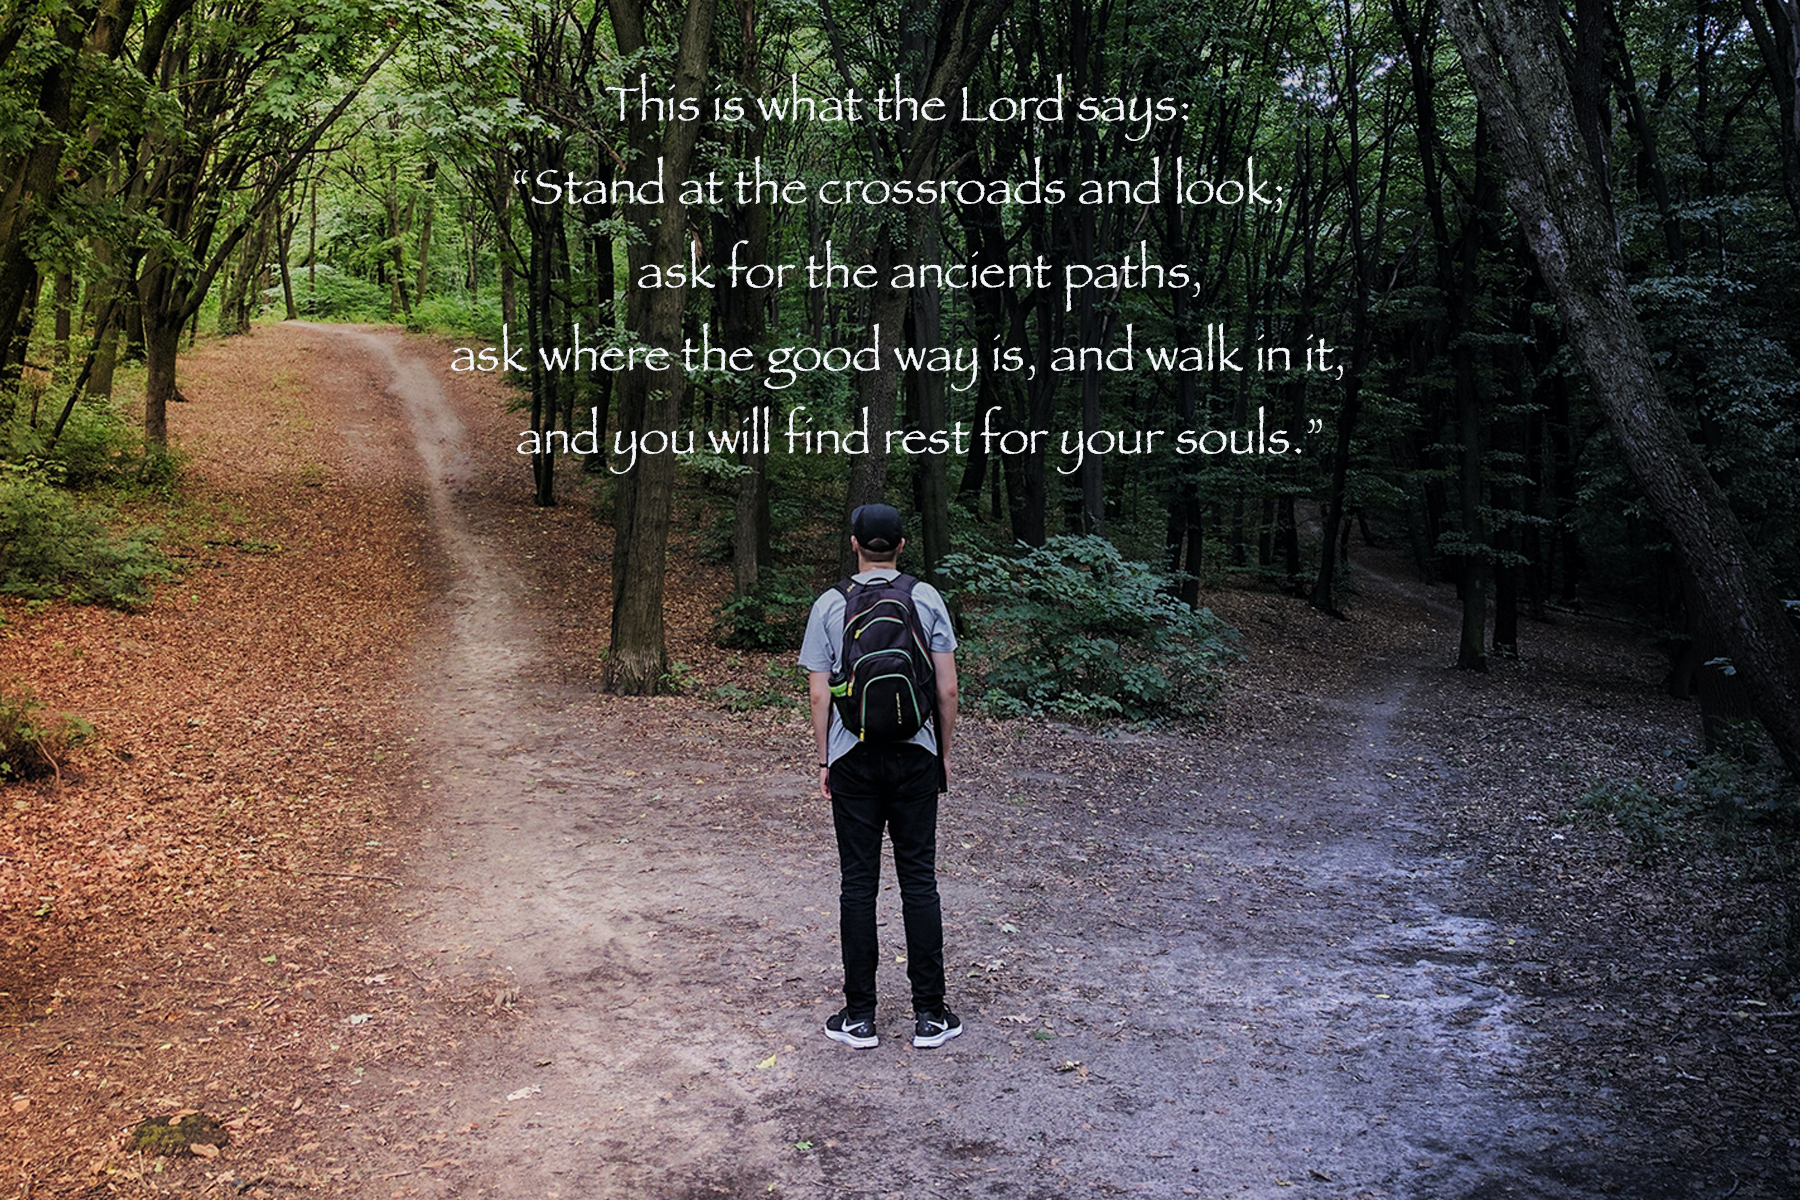 """This is what the Lord says:  """"Stand at the crossroads and look;     ask for the ancient paths, ask where the good way is, and walk in it,     and you will find rest for your souls."""